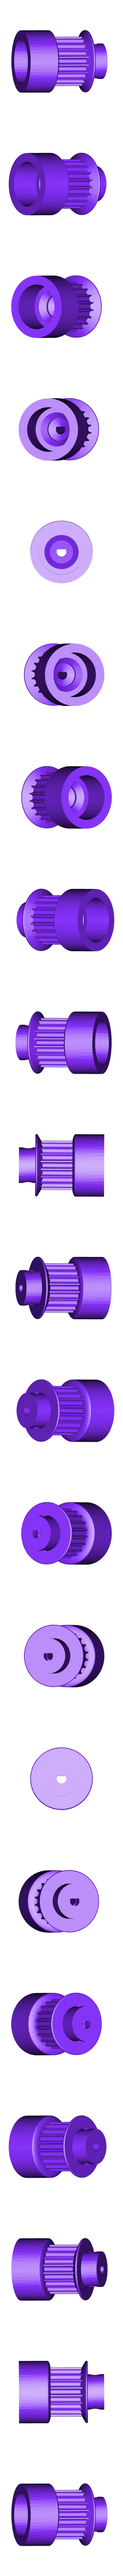 OpenRC_F1_250scaled_-_60491_motor-1.STL Download free STL file OpenRC F1 250% scaled • Template to 3D print, colorFabb